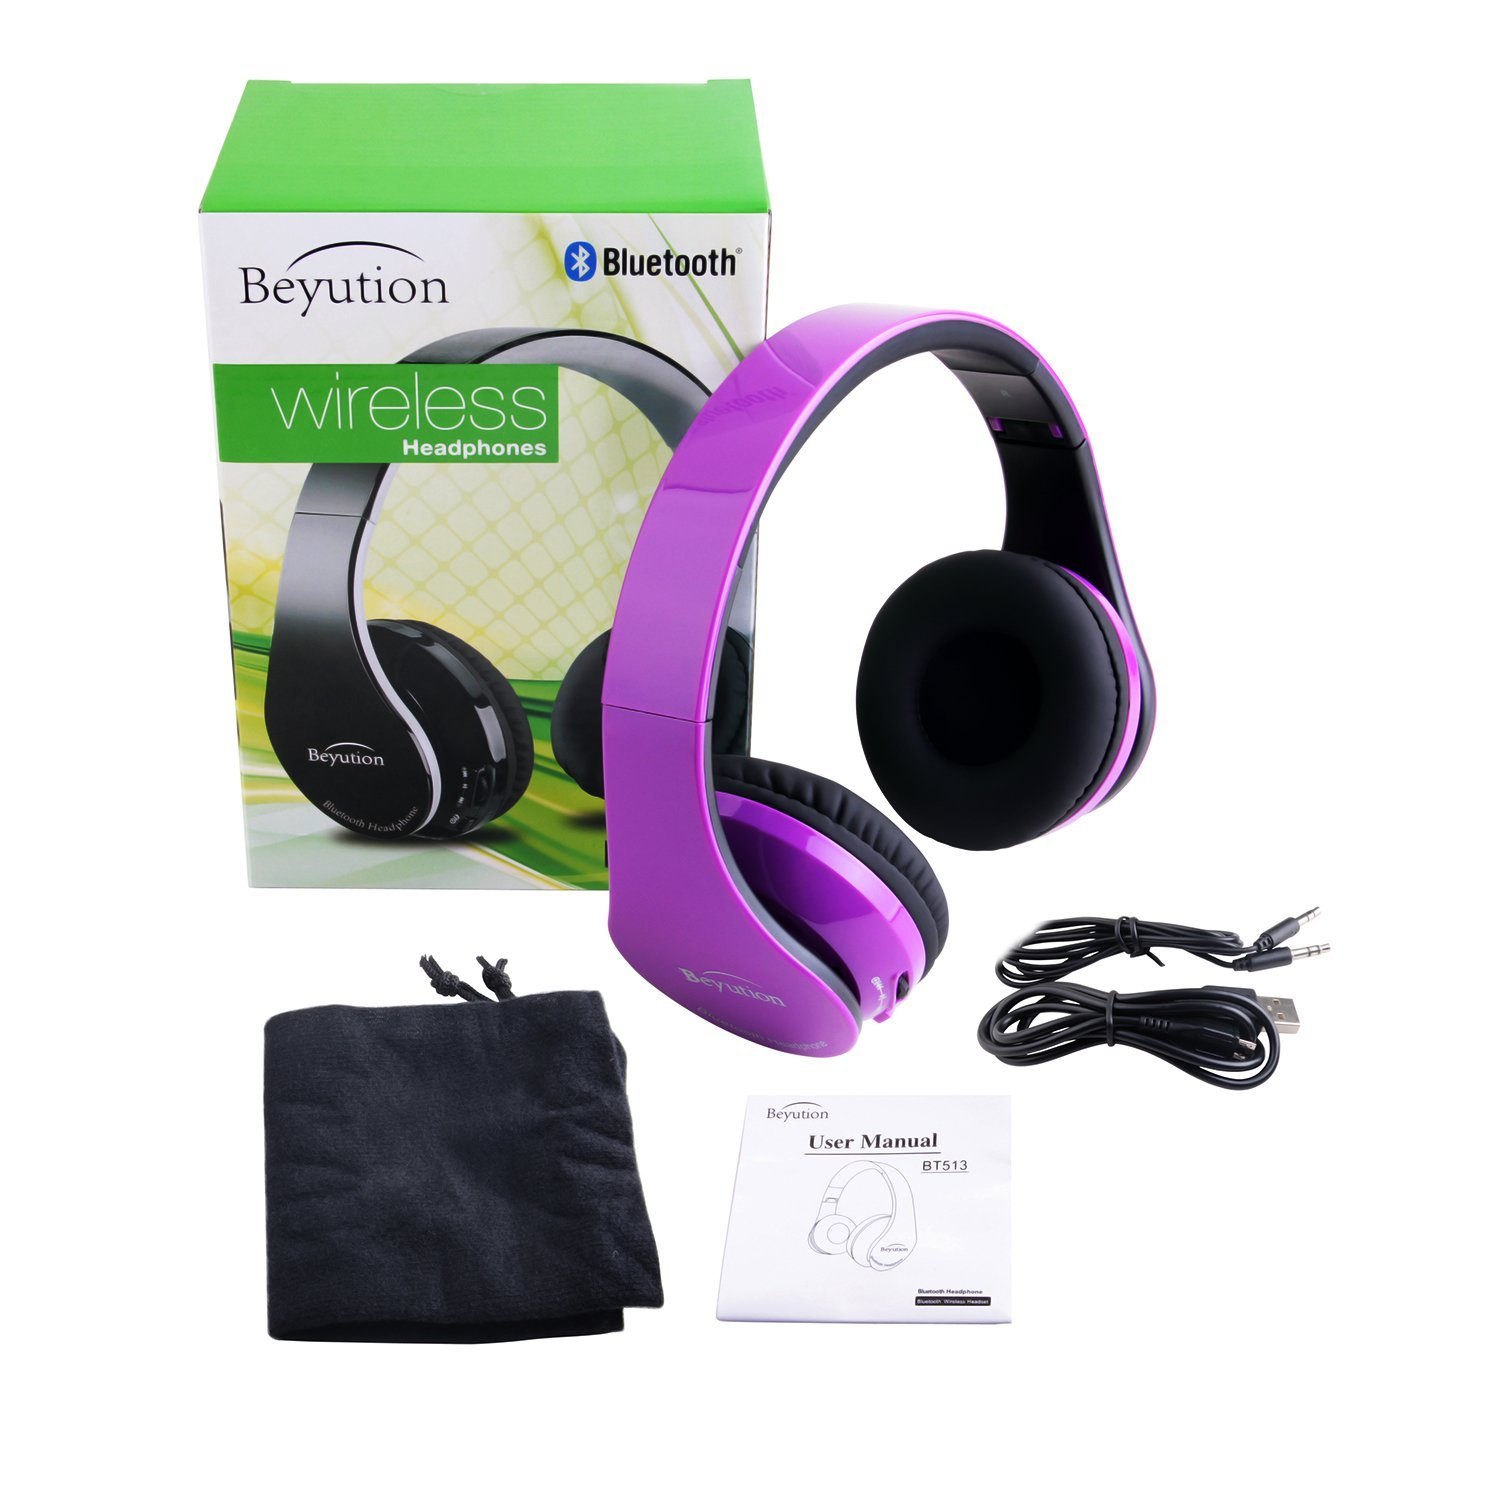 Beyution Wireless Bluetooth Headphones Over-ear HiFi Stereo Headset Built  in Mic-phone Sport Over Head earphones for Android Samsung iPhone